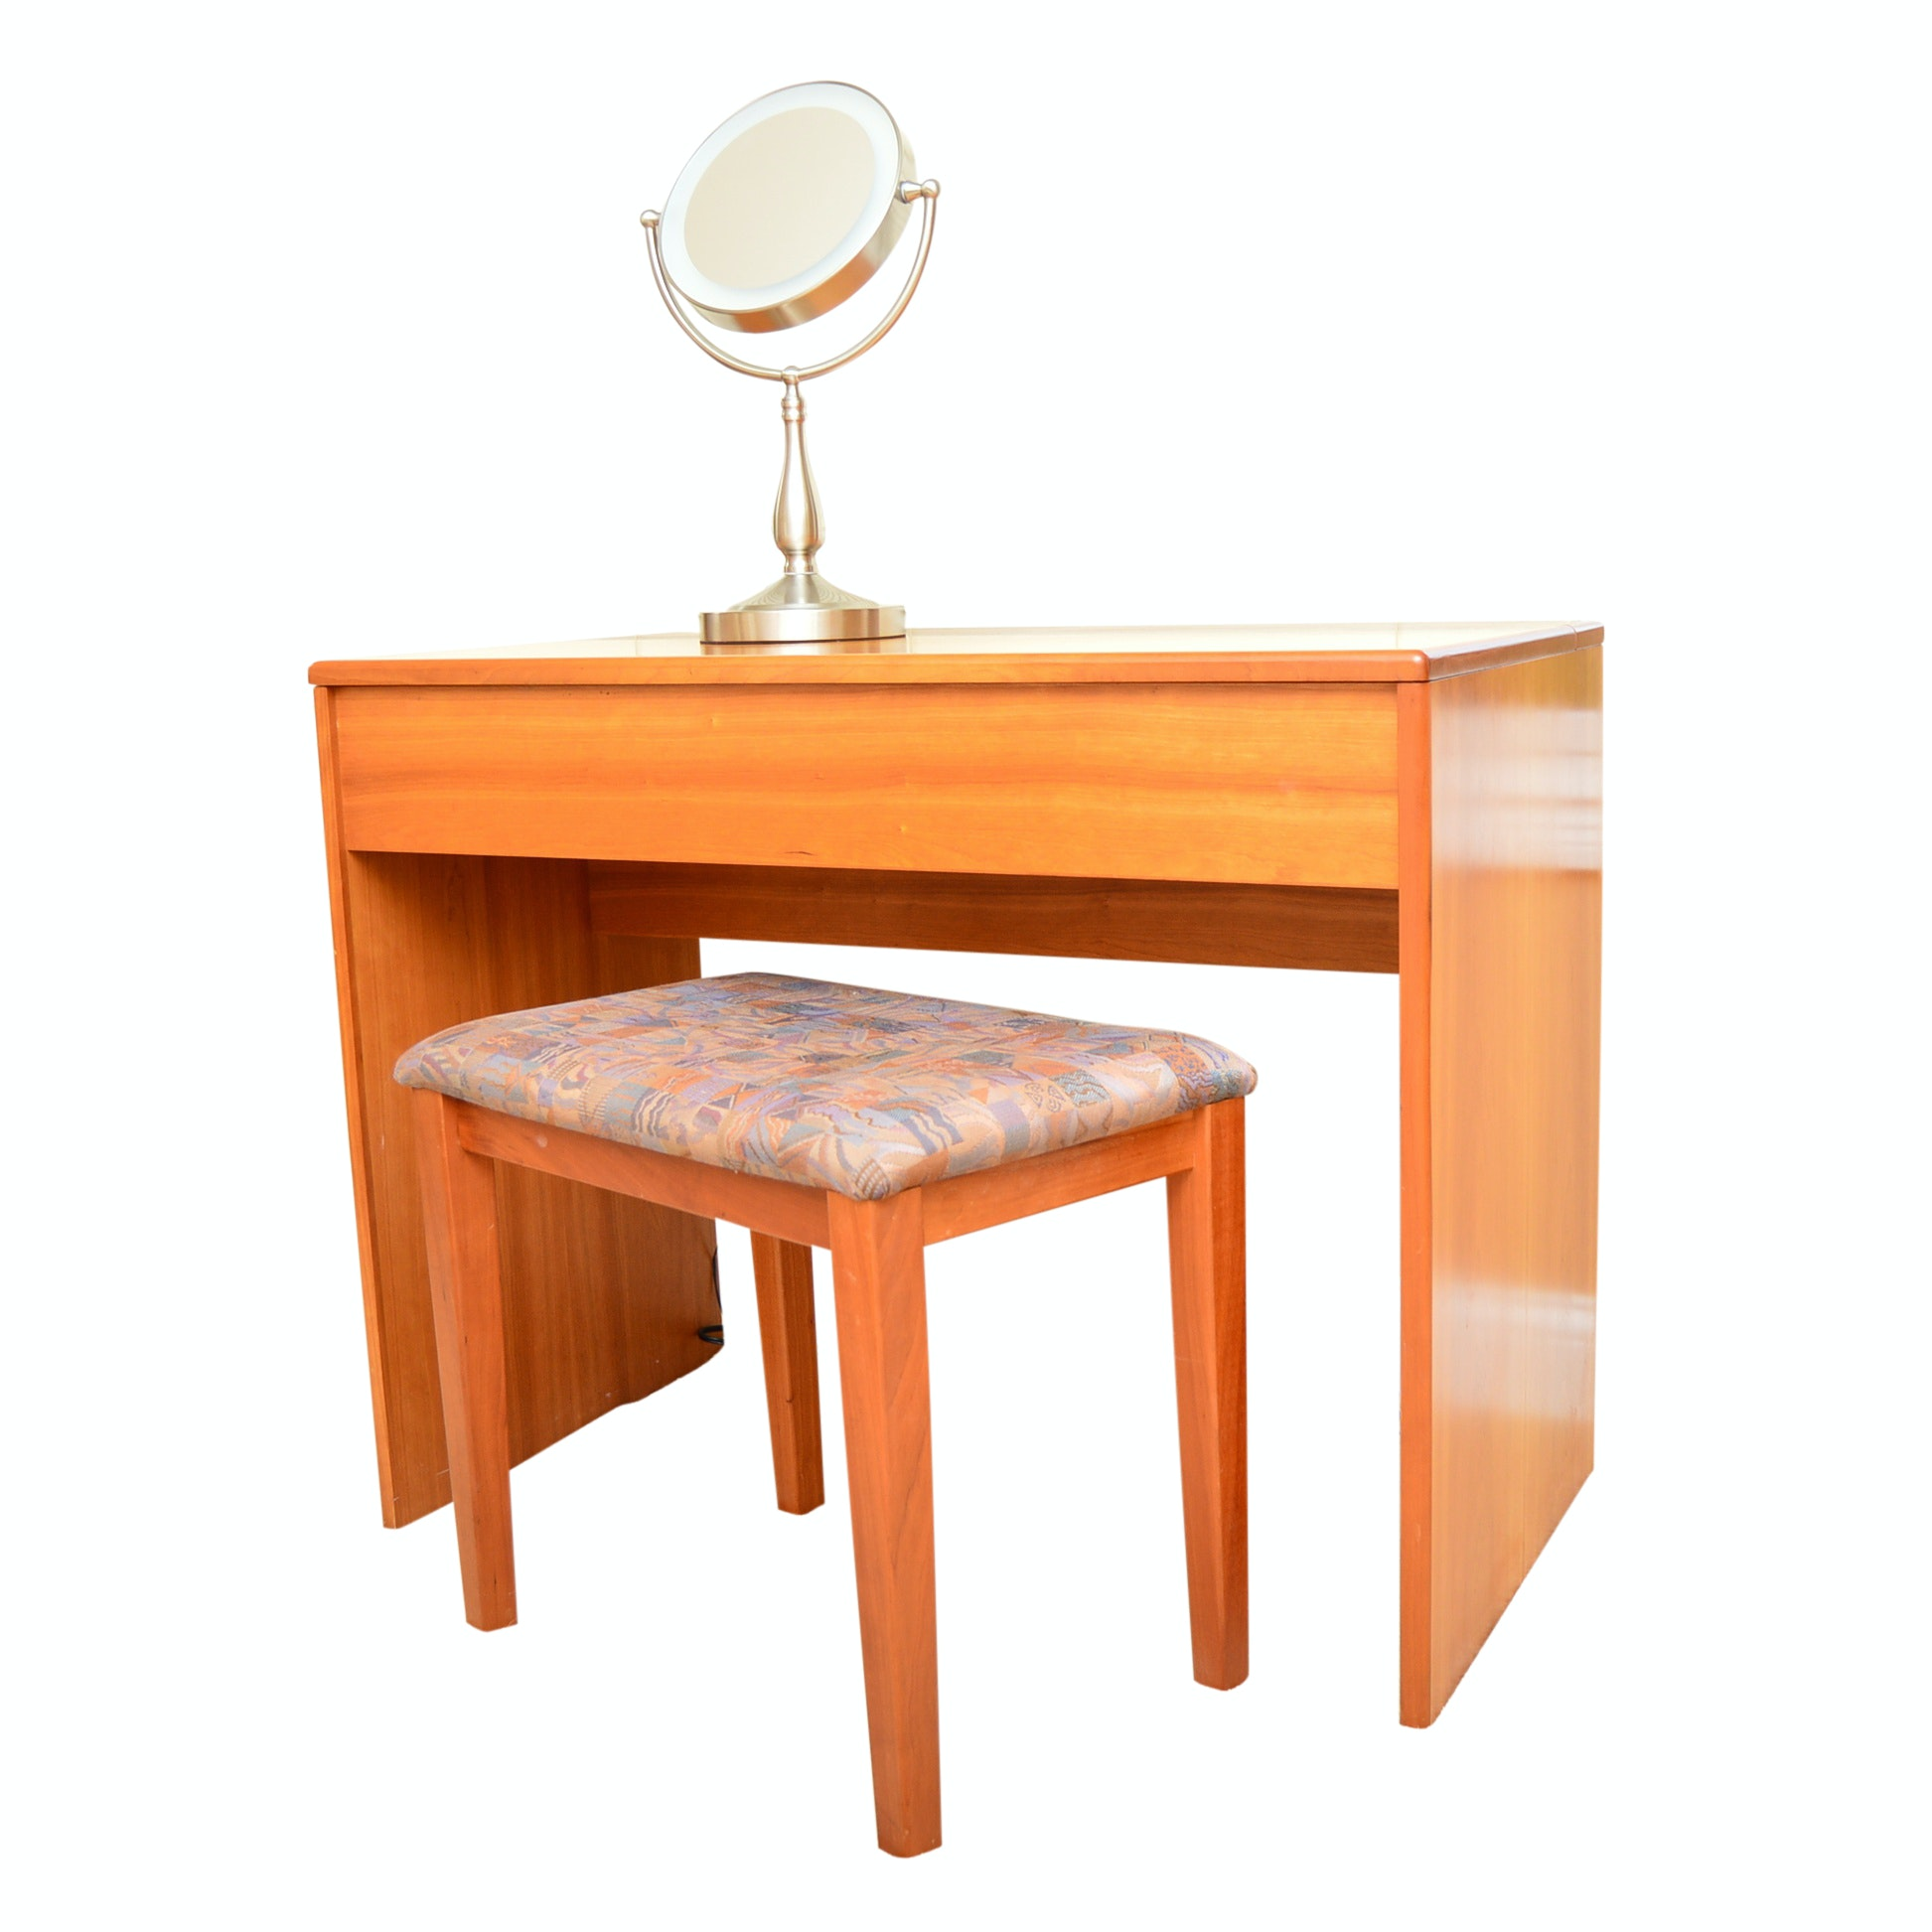 Teak Dressing Table with Bench and Frontgate Makeup Mirror